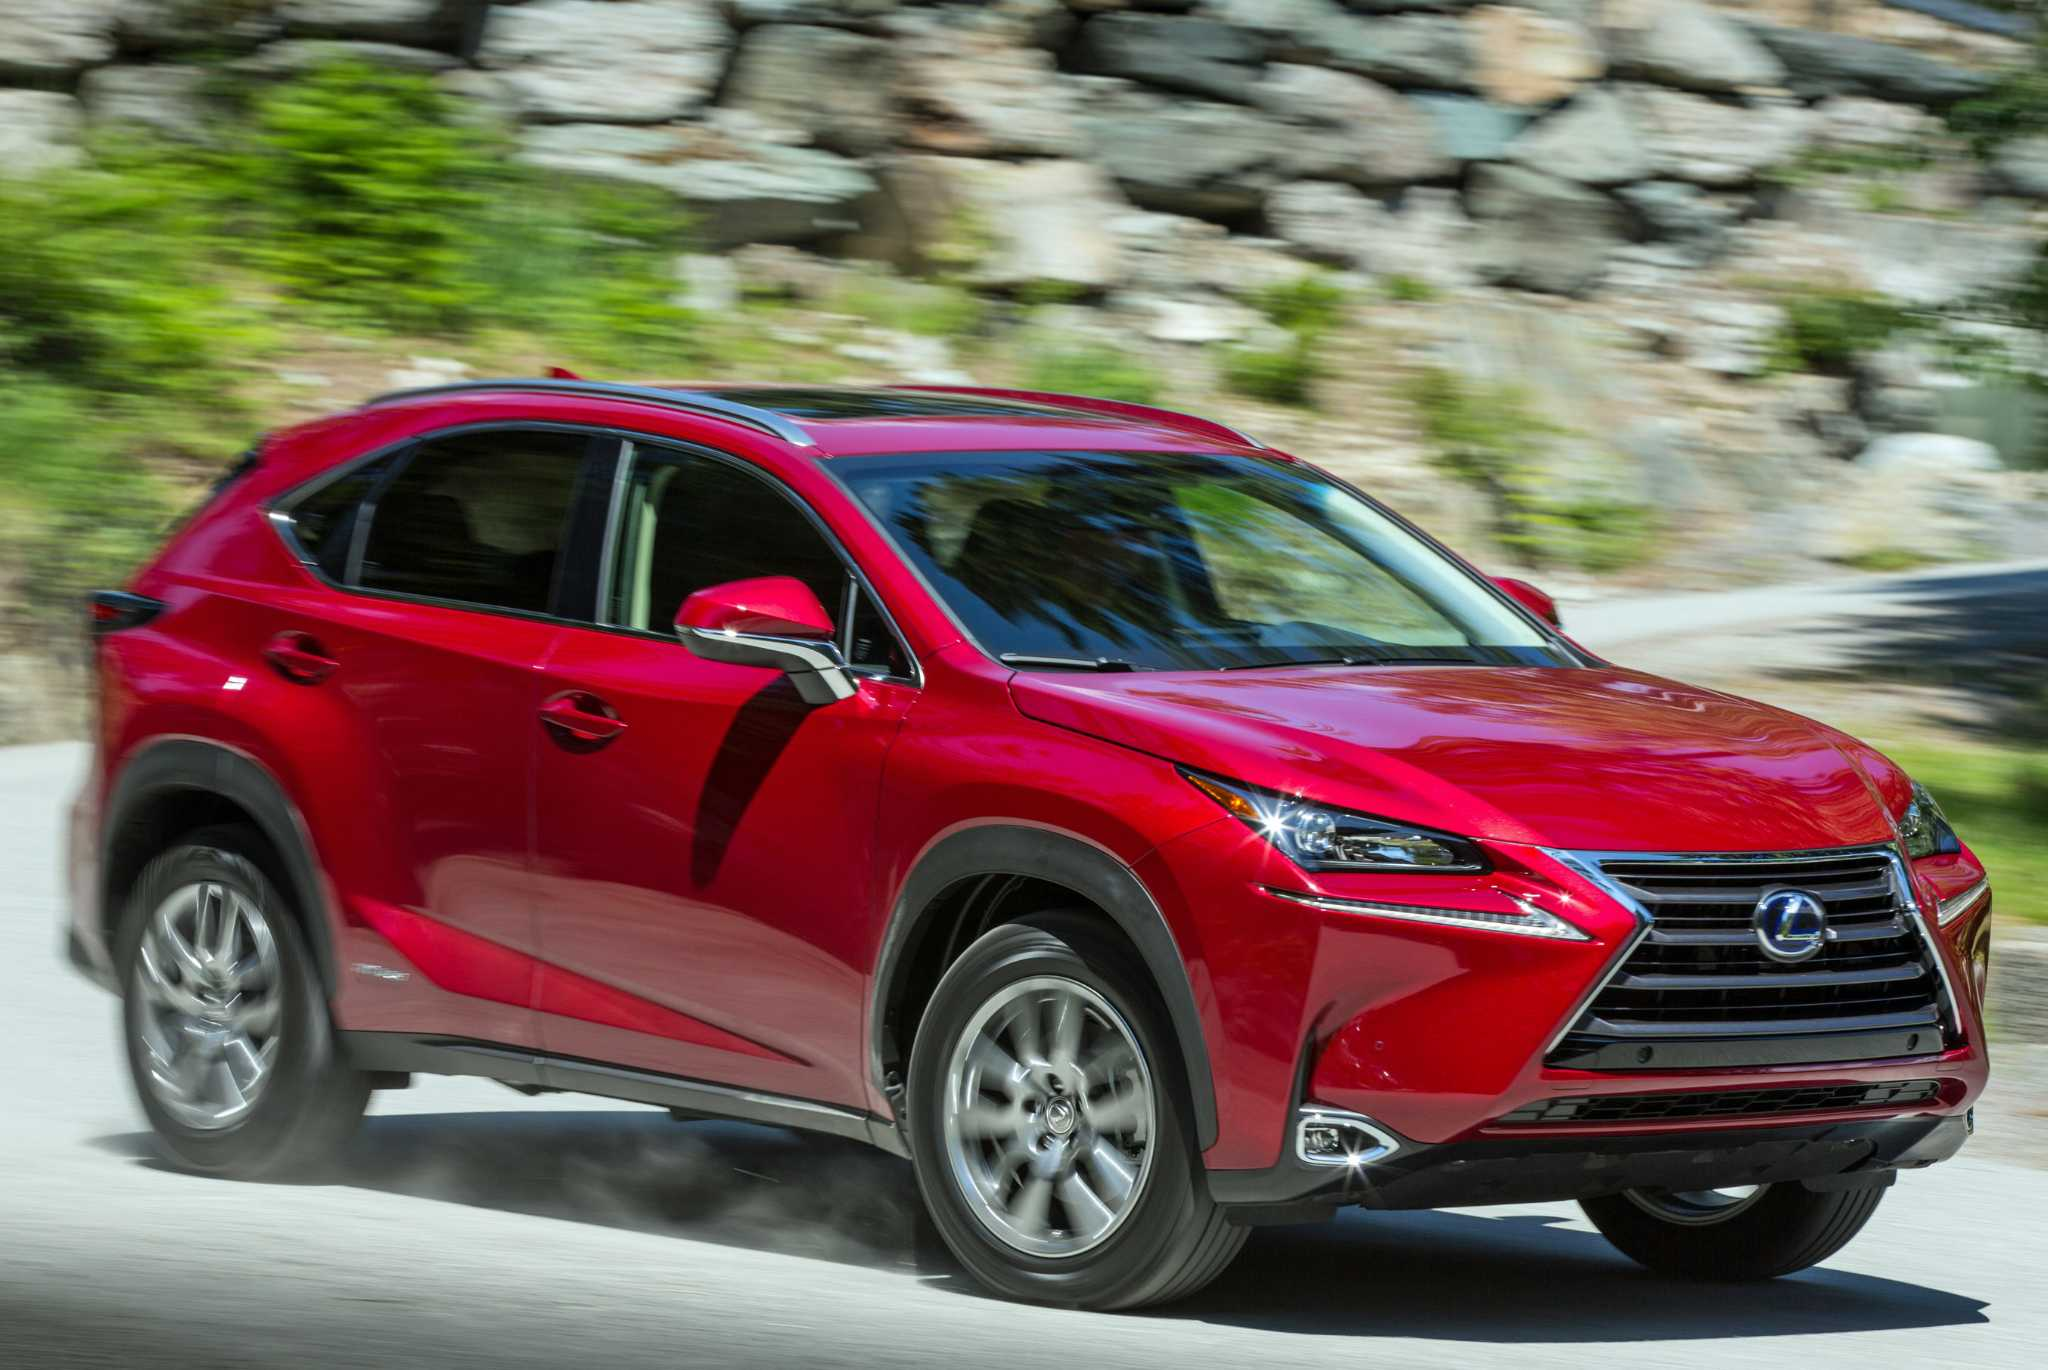 Lexus NX 300h compact hybrid crossover starts at $39,720